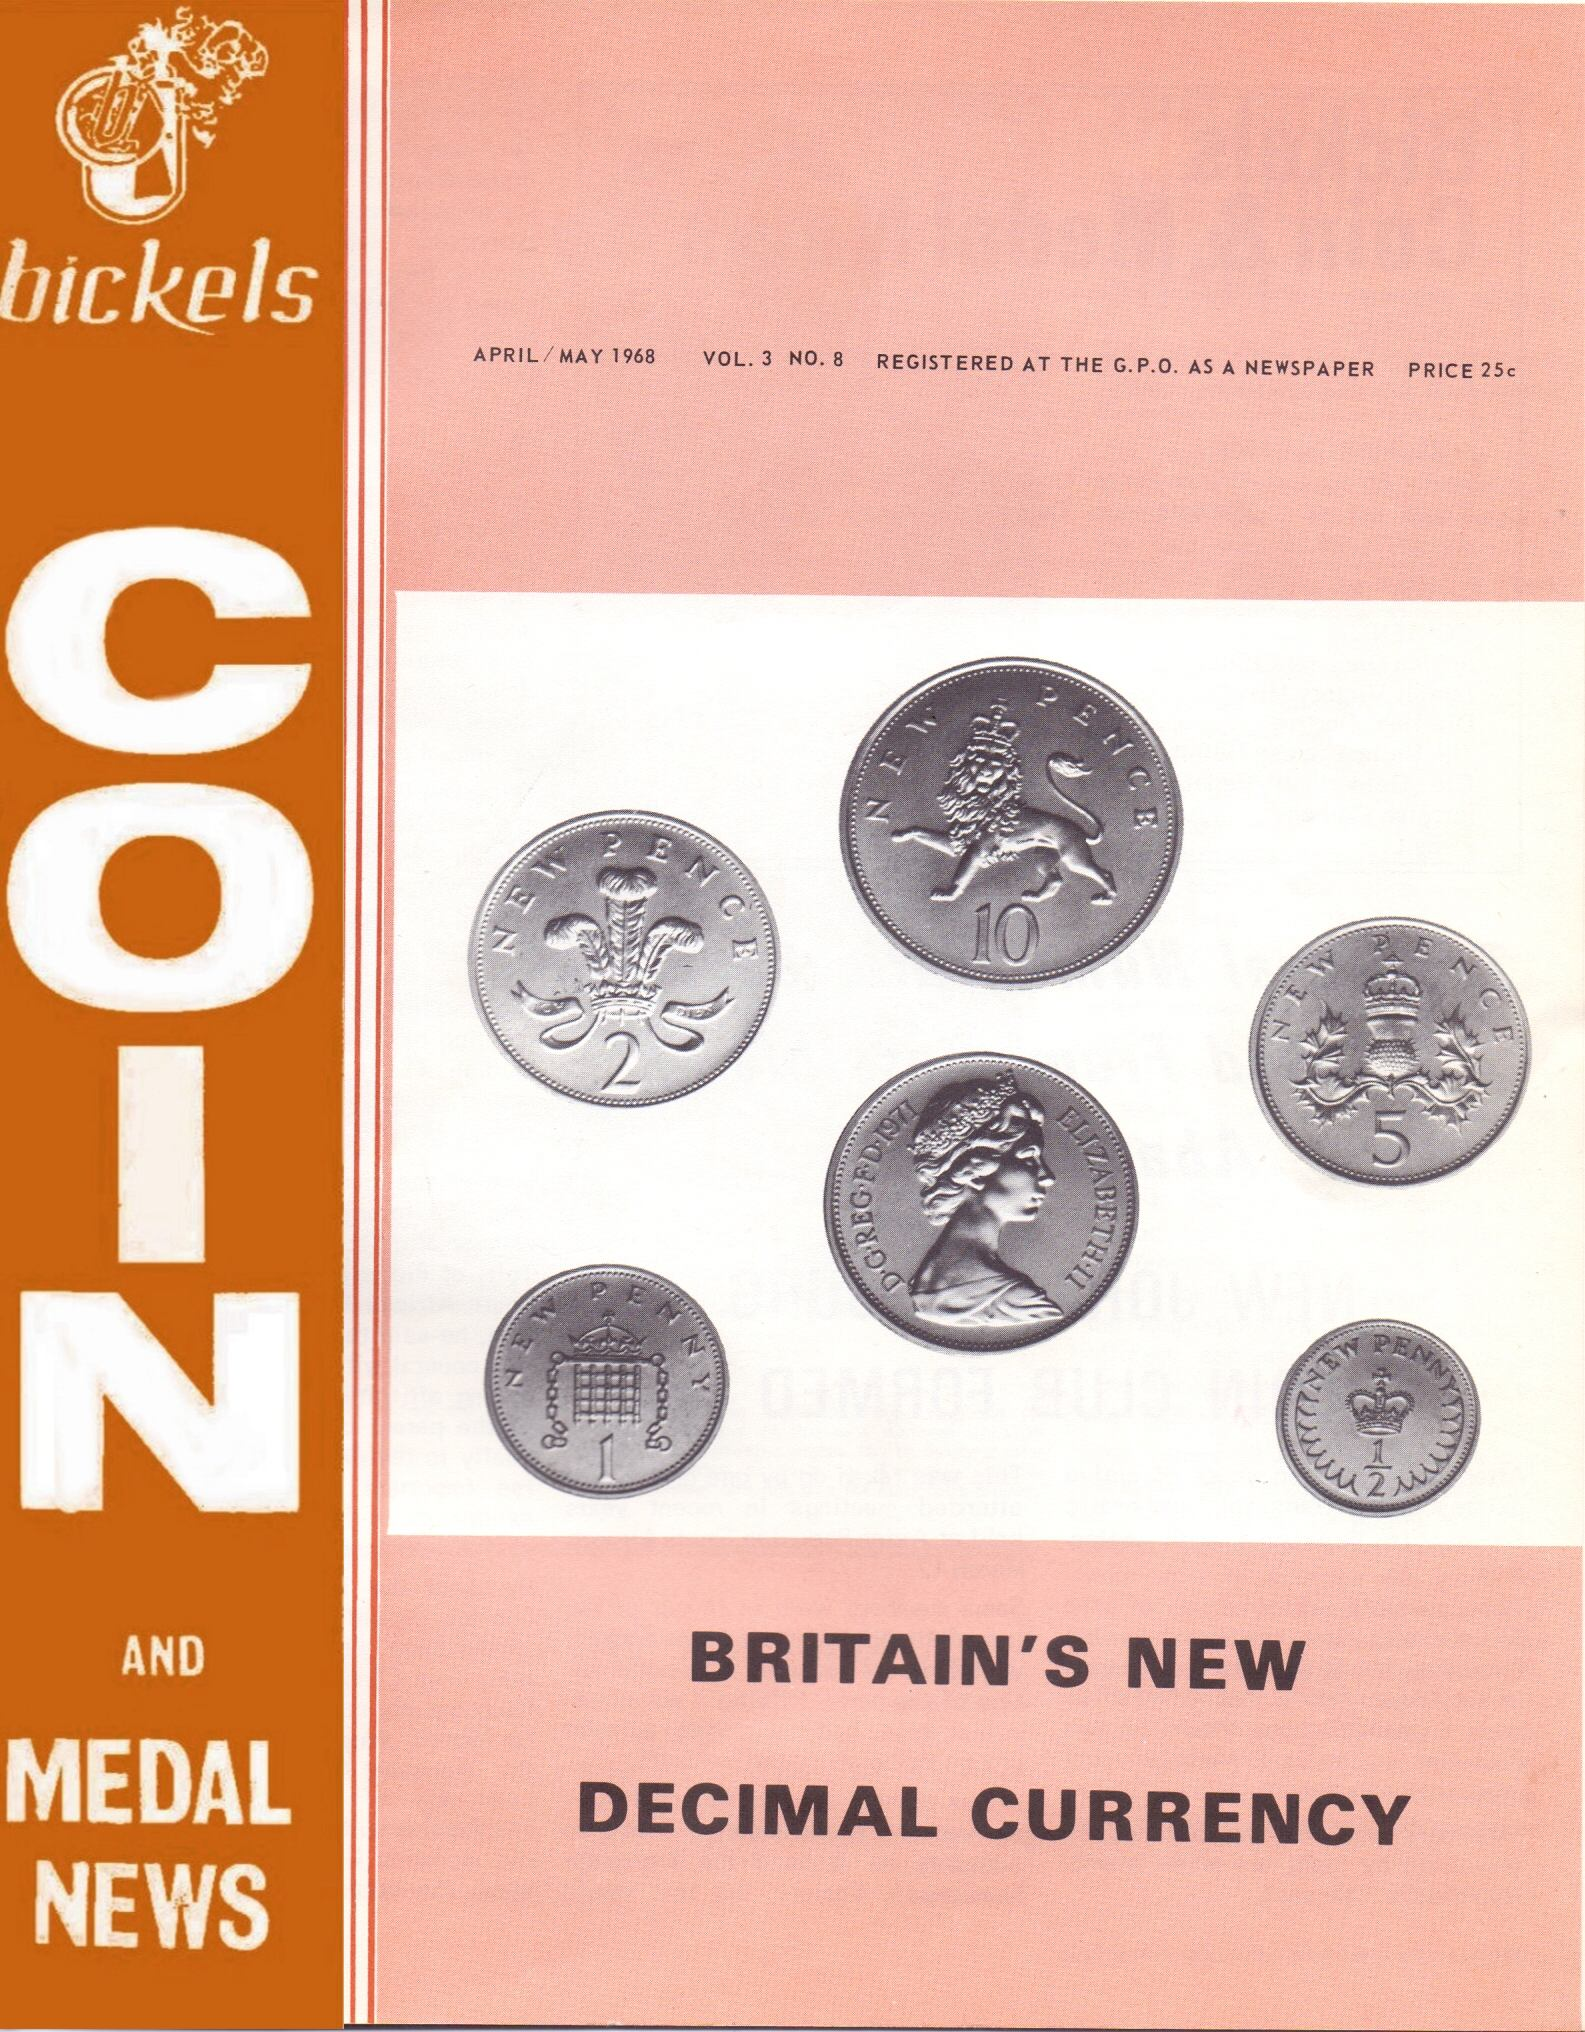 Bickels Coin & Medal News April May 1968 Vol 3 No 8